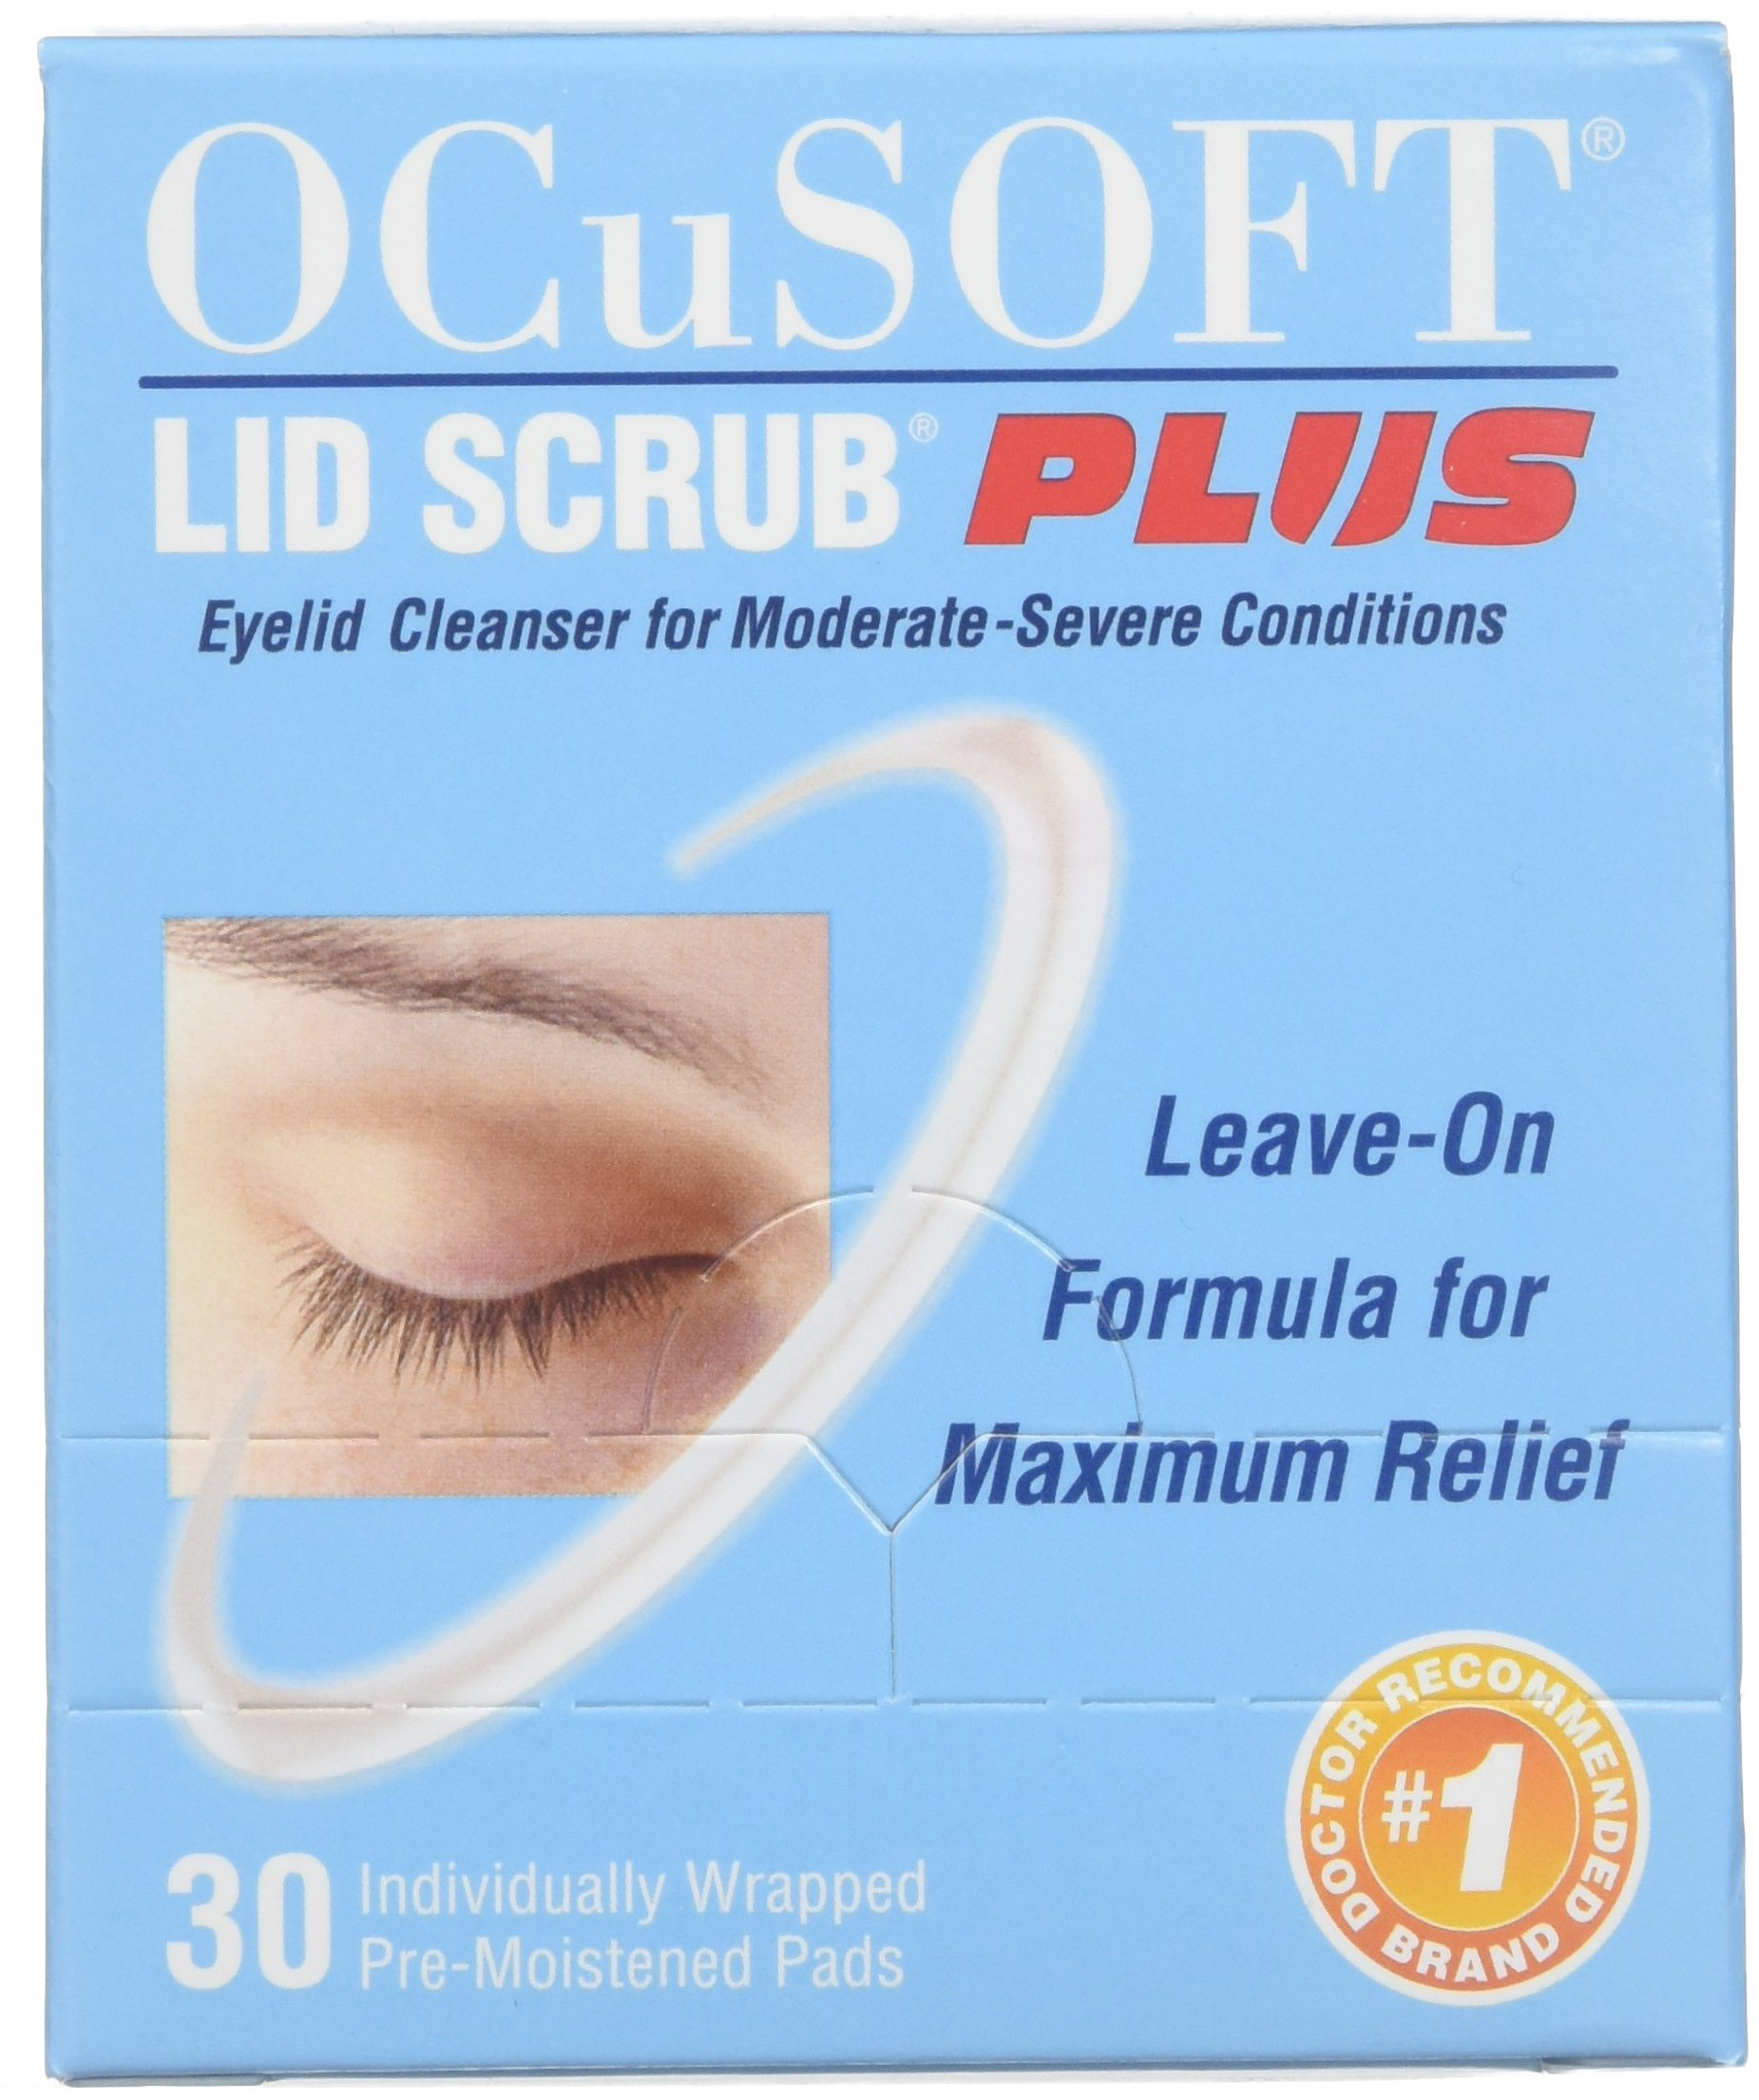 OCuSOFT Lid Scrub Plus, Pre-Moistened Pads, Individually Wrapped, 30 Count (Pack of 2)